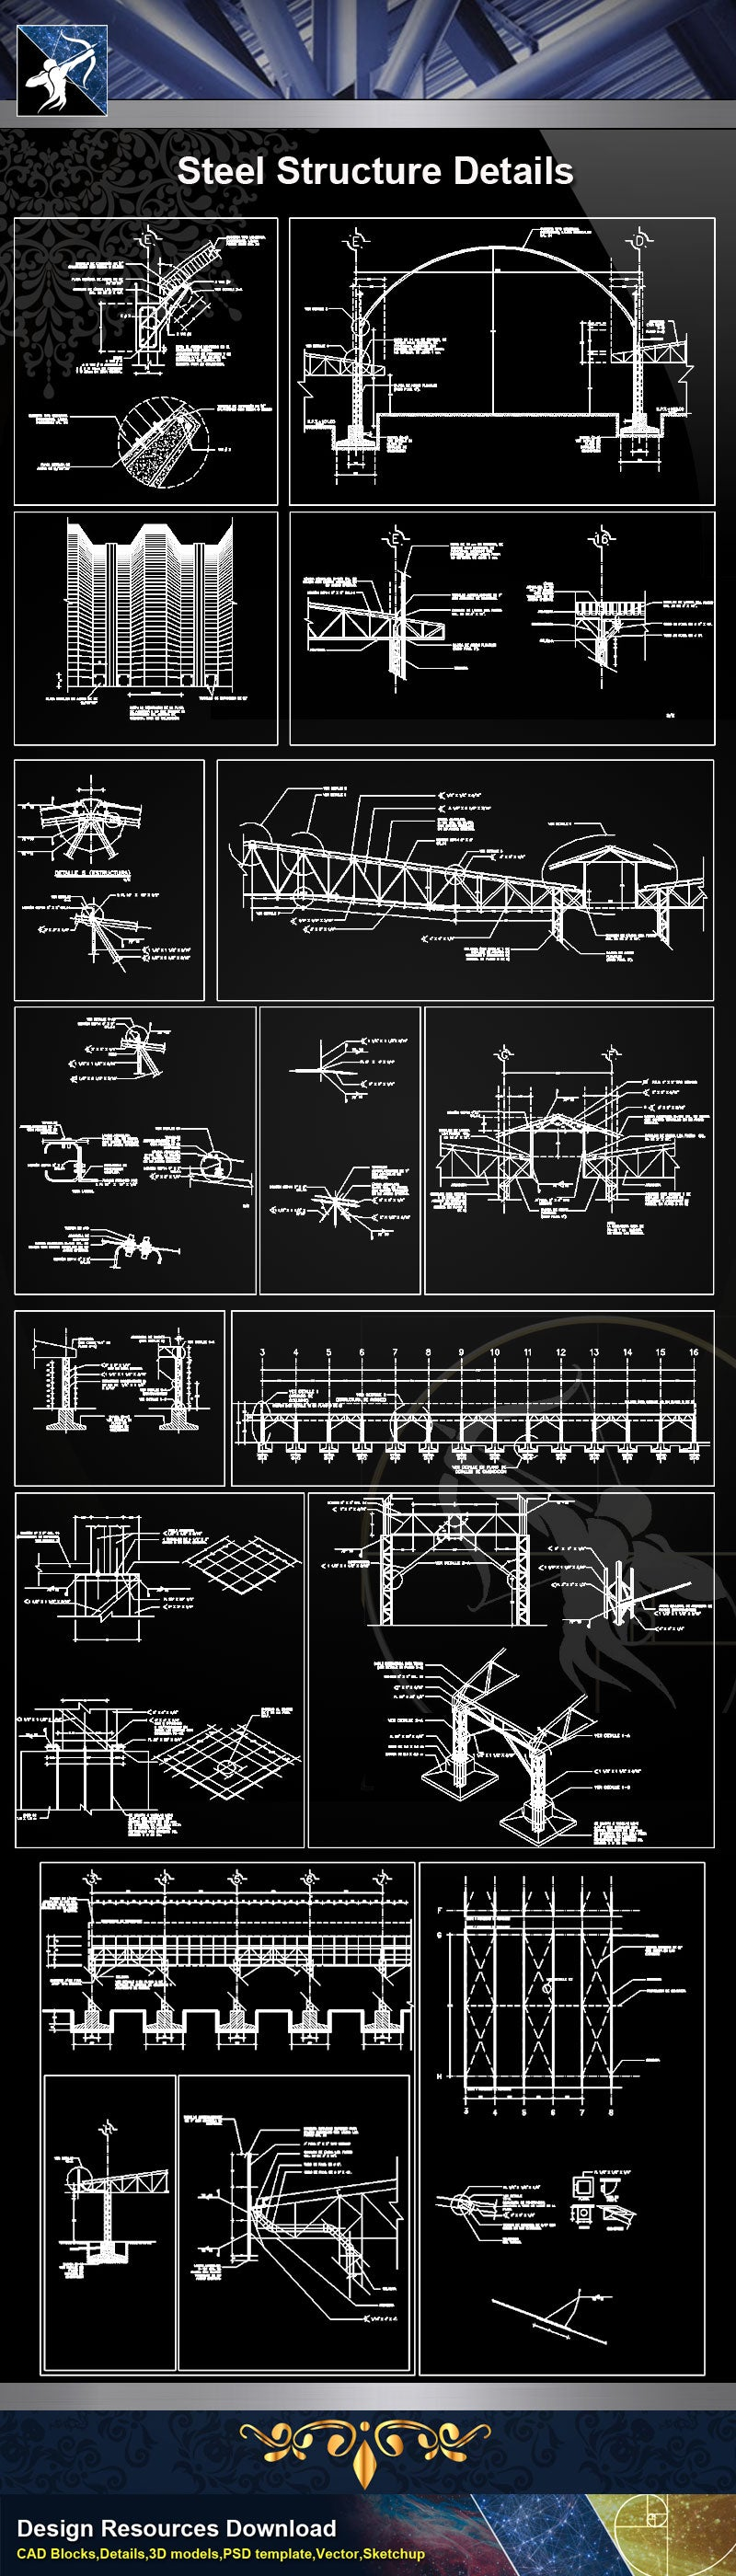 ★【Steel Structure Details】Steel Structure Details Collection V.6